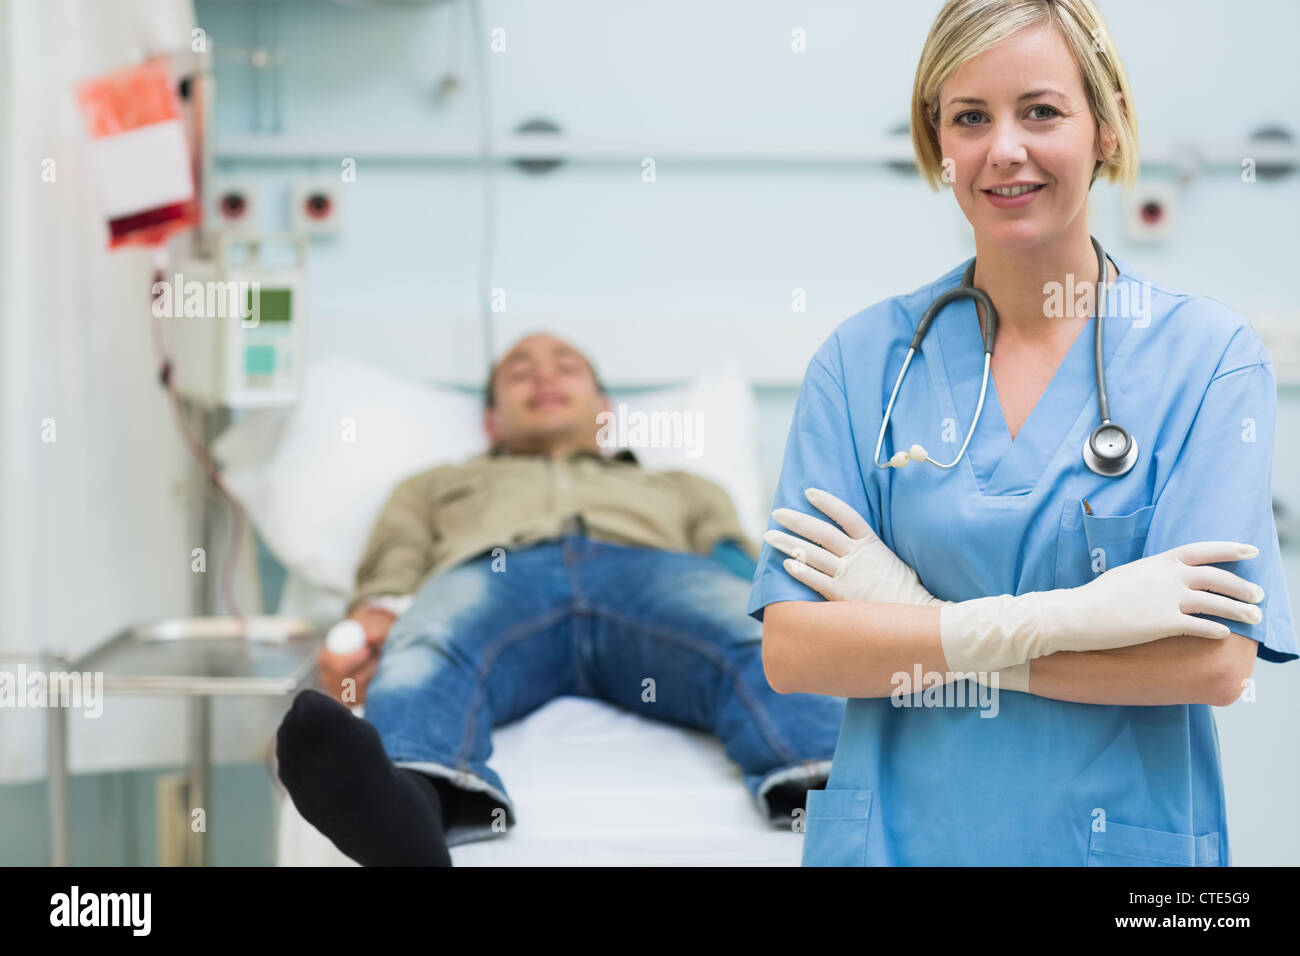 Nurse next to a male patient with arms crossed - Stock Image